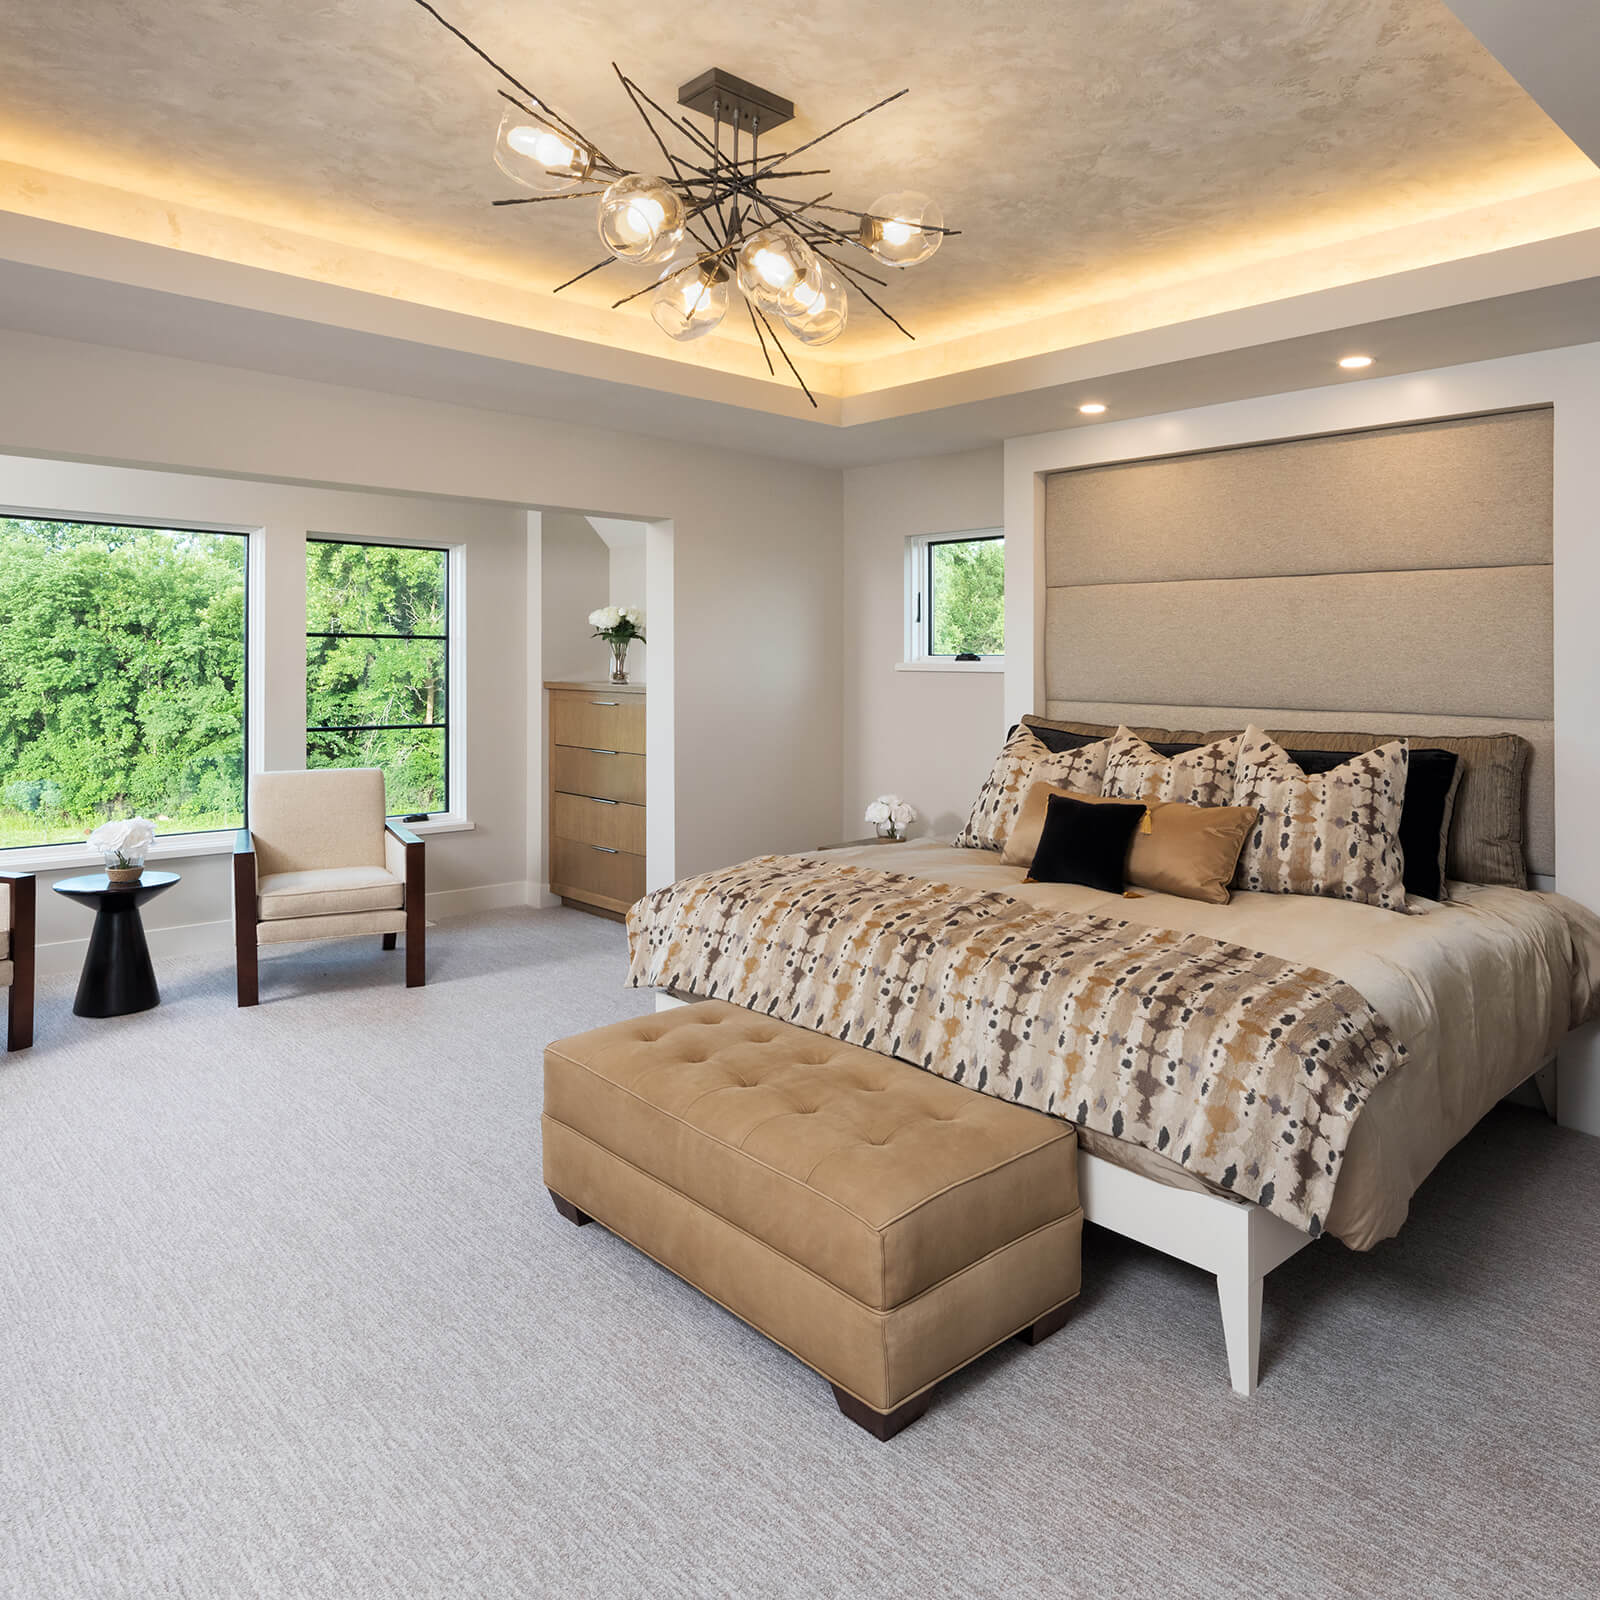 Large bedroom with Marvin Elevate Casement Windows and Elevate Direct Glaze Windows